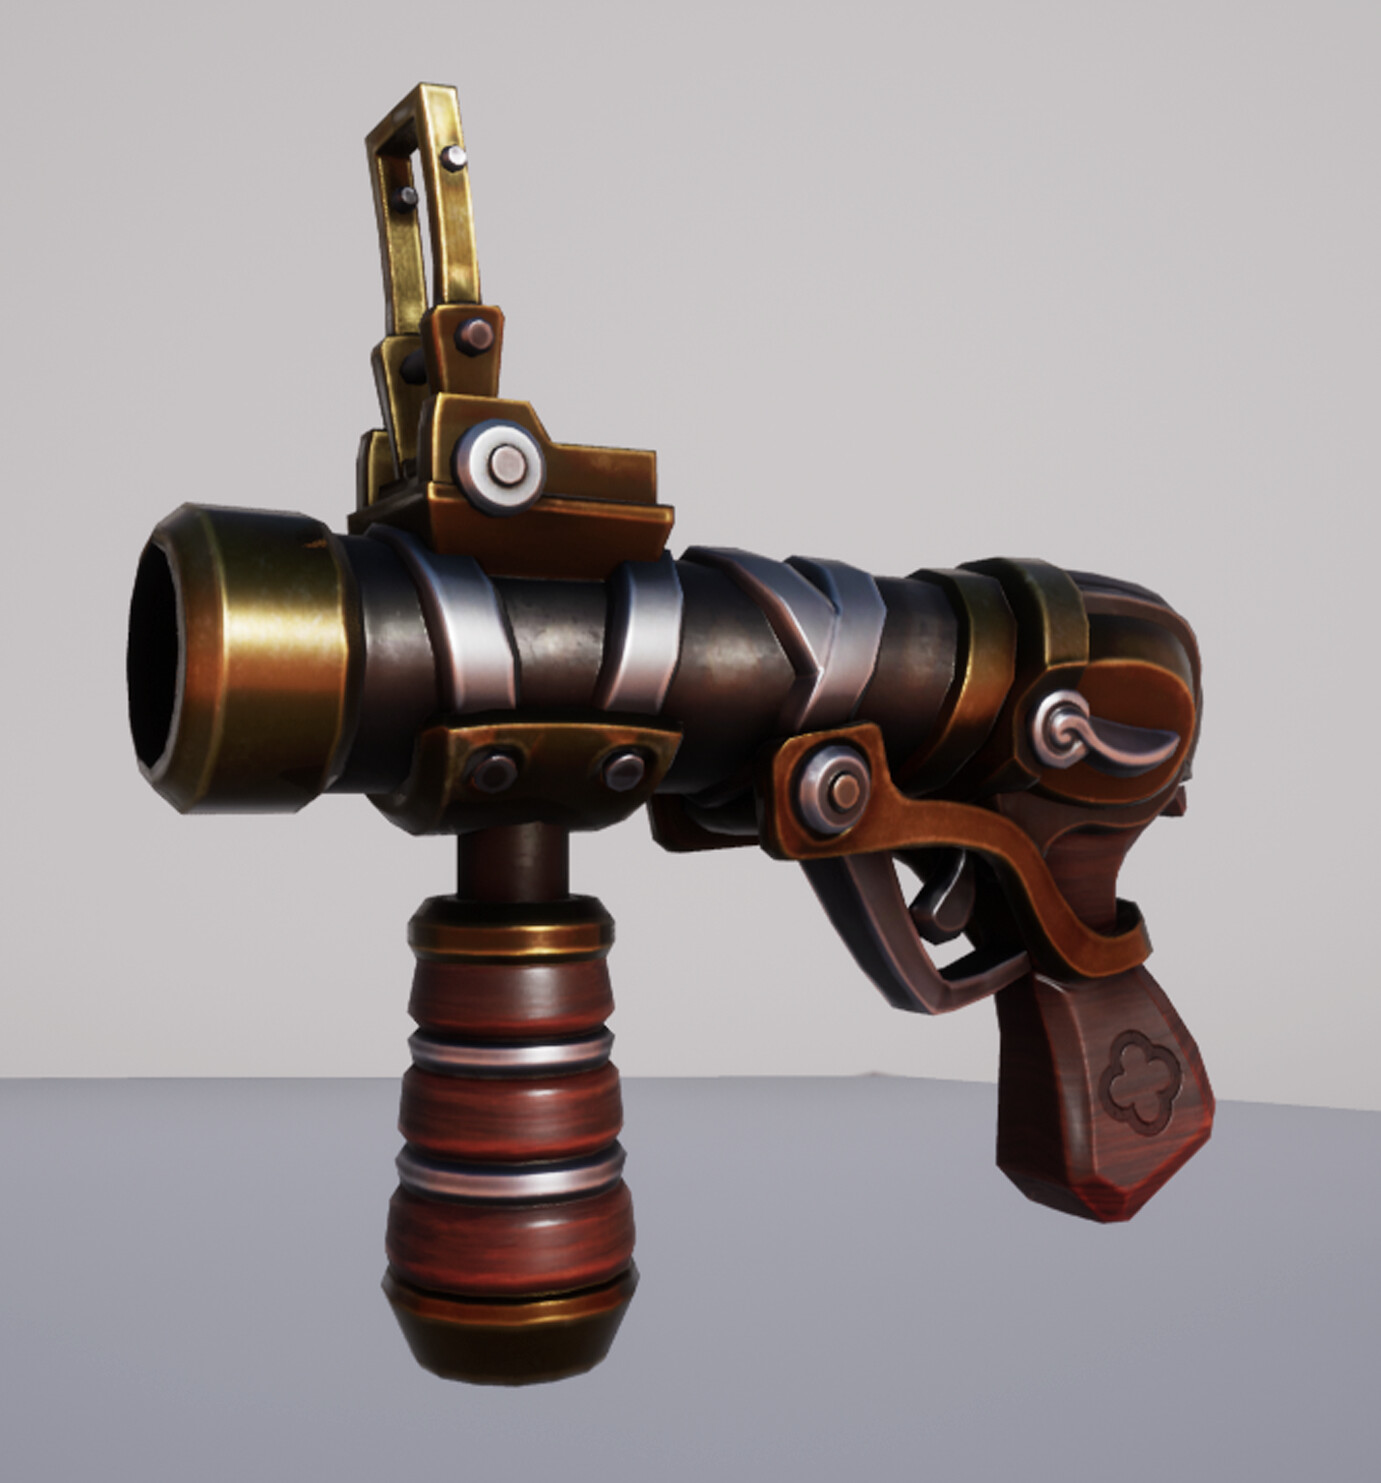 Stylized Steampunk Grenade Launcher Thingy